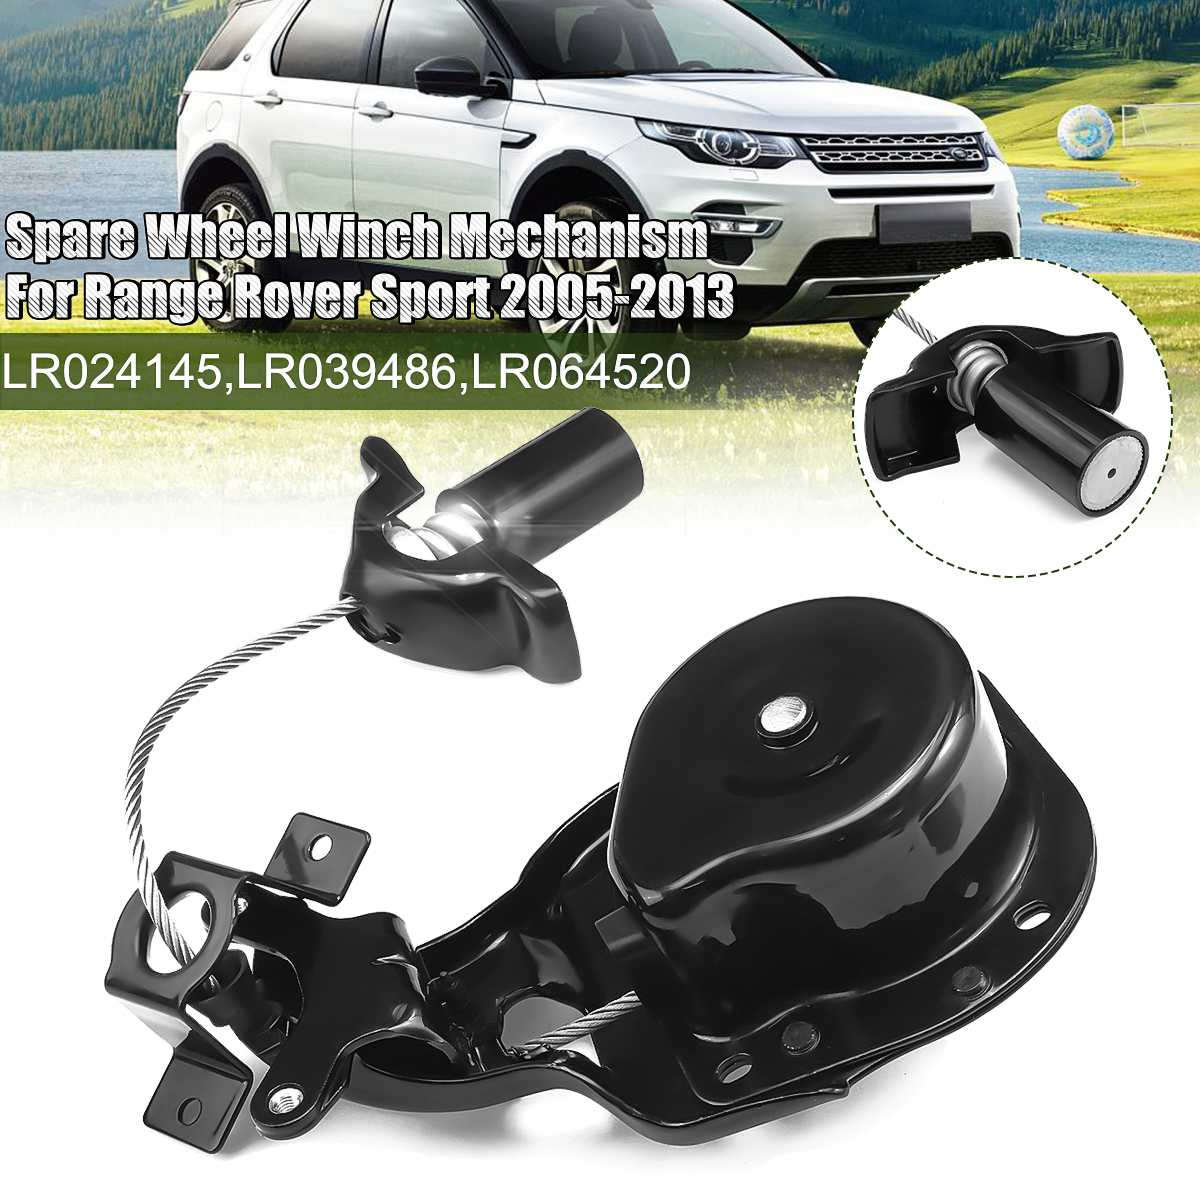 LR024145 Car Spare Tire Winch Spare Wheel Lift Winch For Land Rover Discovery 3 4 2004-2013 For Range Rover Sport 2005-2013